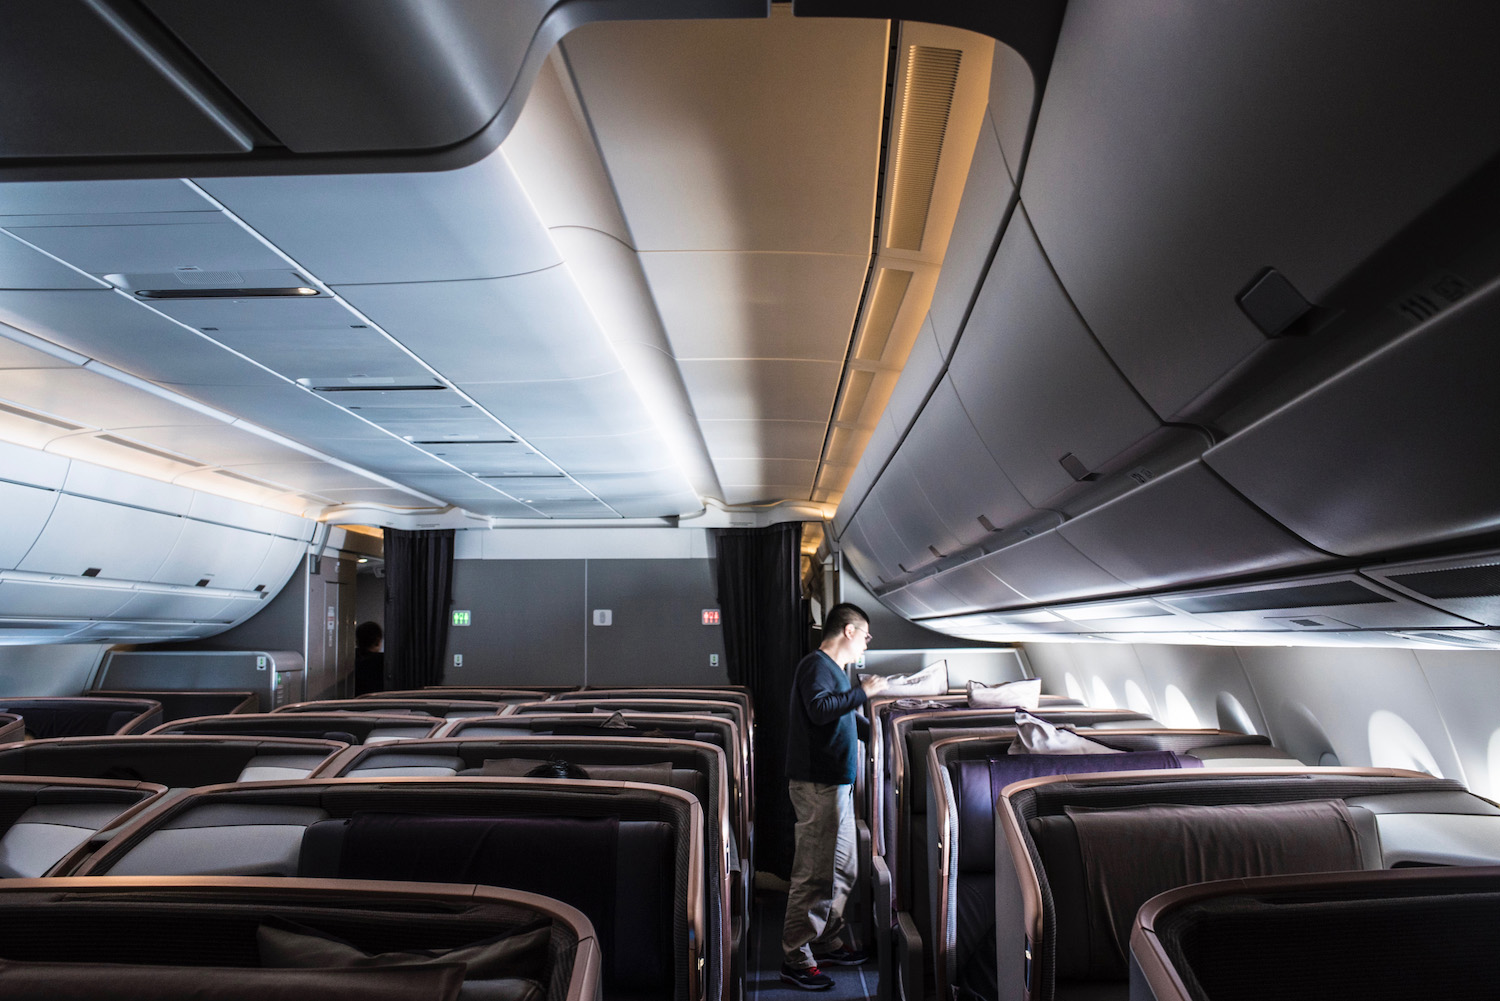 What Are the Best Airlines for Business Class?